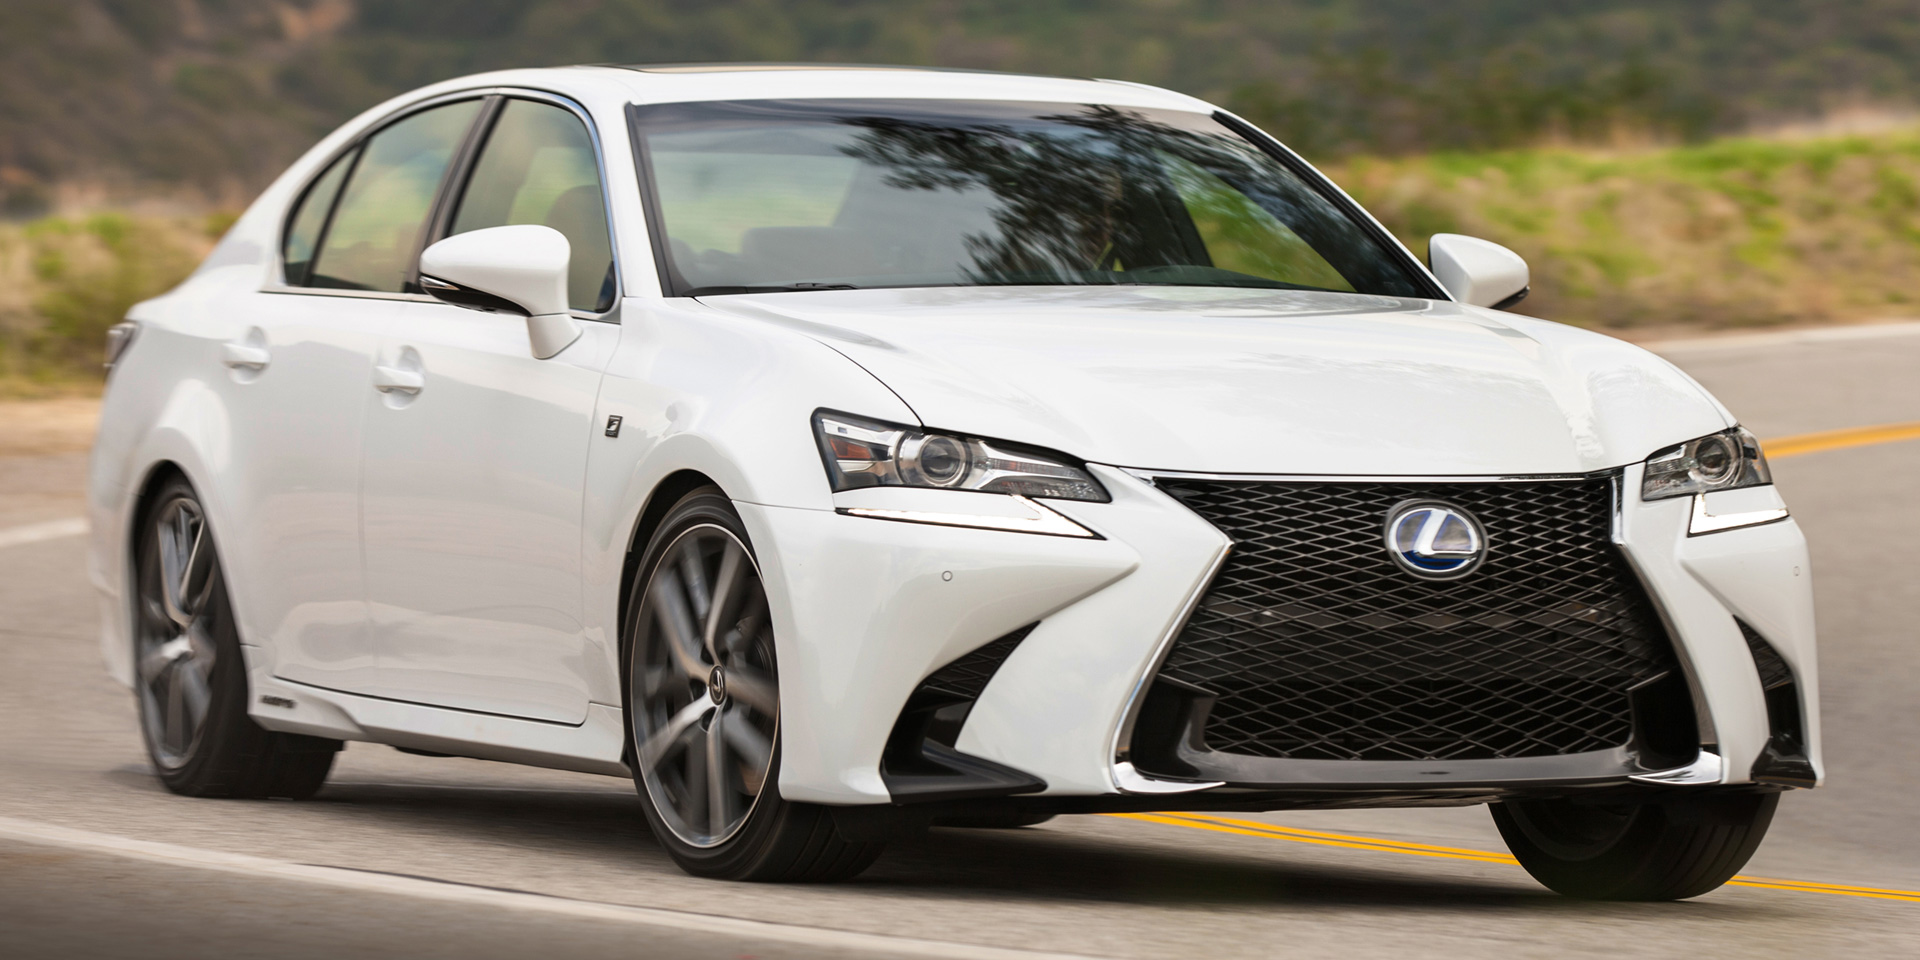 2018 - Lexus - GS - Vehicles on Display | Chicago Auto Show